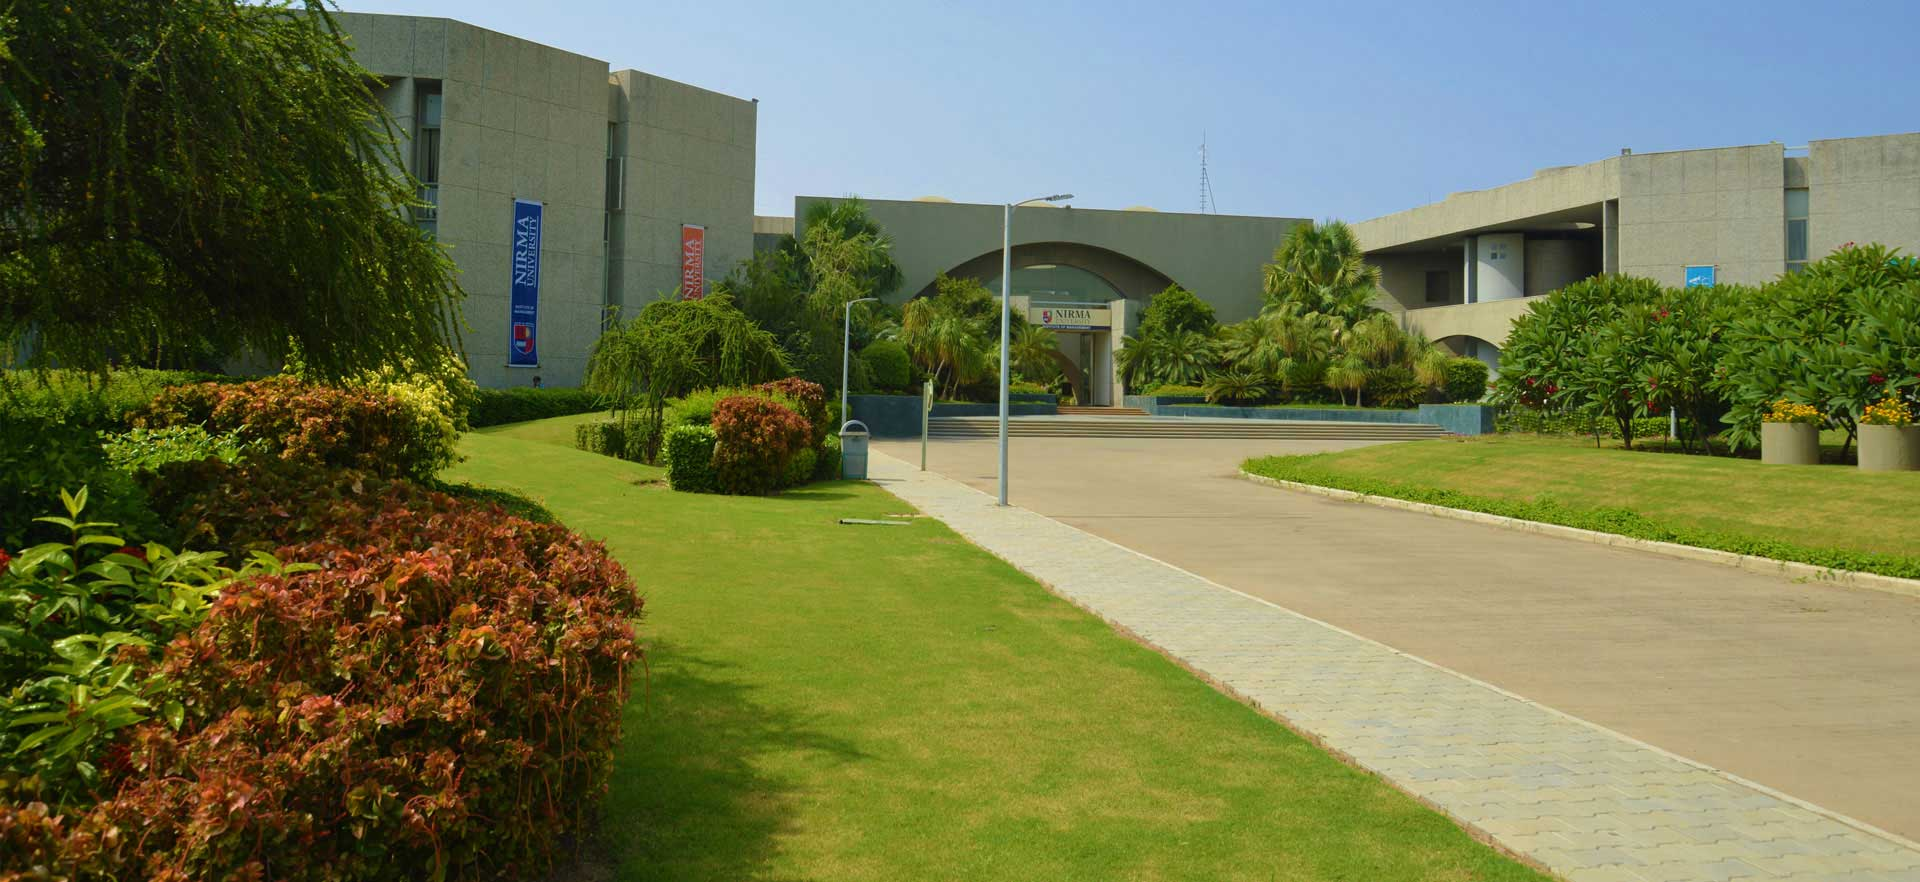 institute-of-pharmacy-nirma-university-ahmedabad.jpg